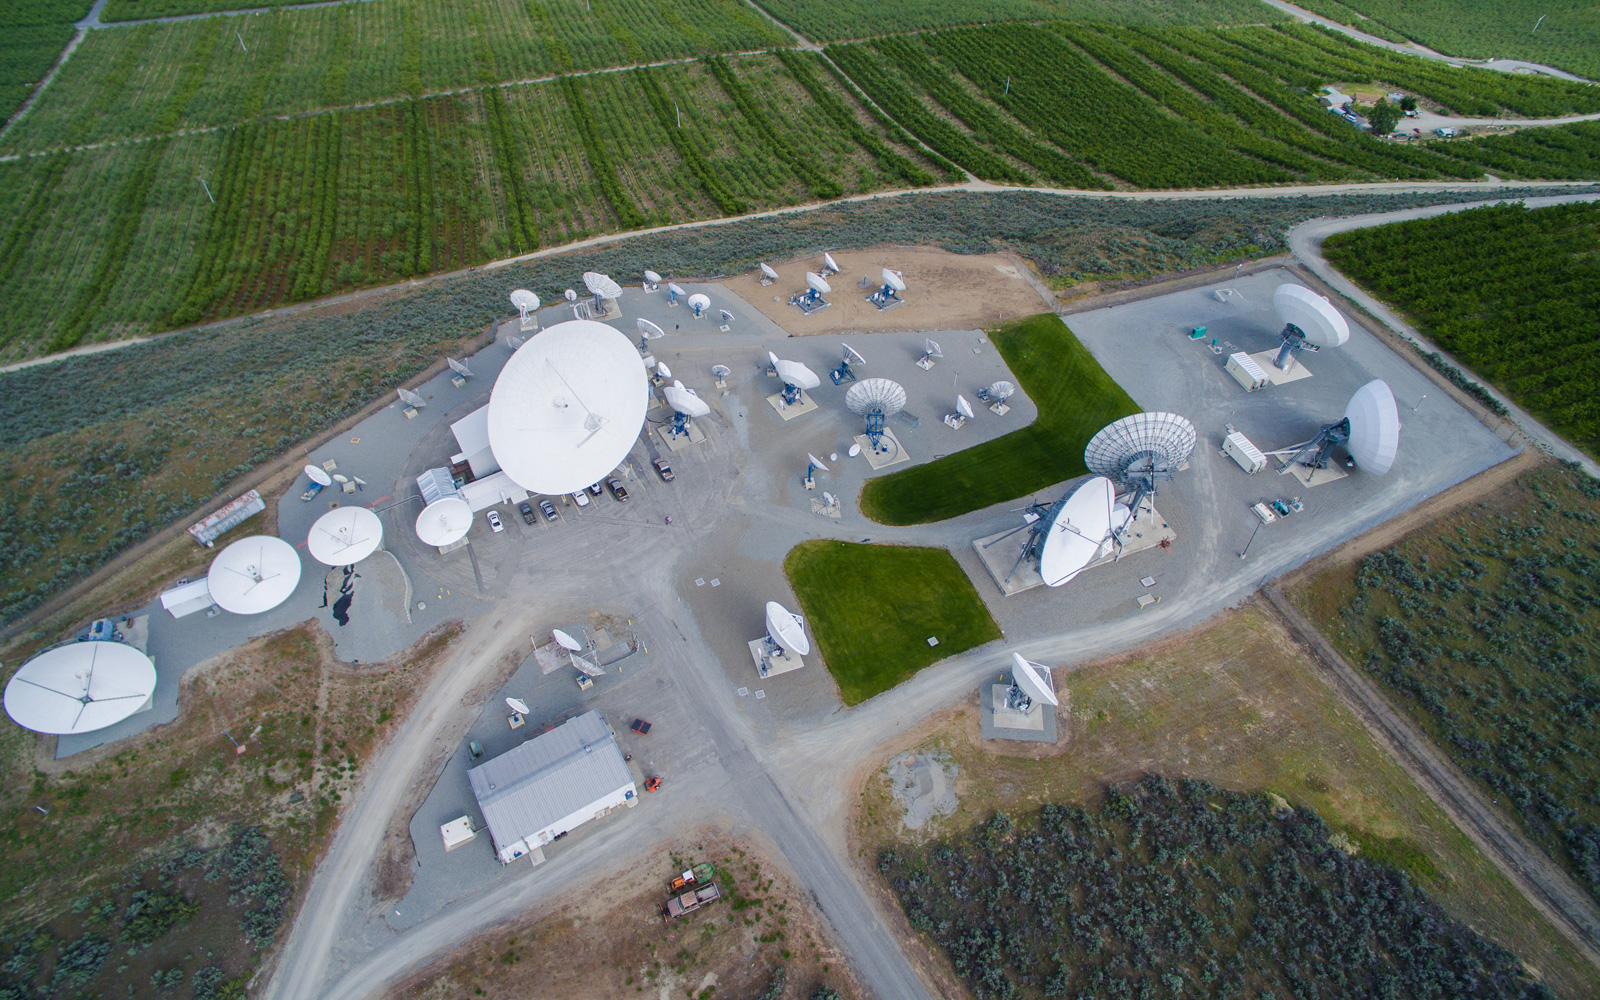 USEI is Currently Constructing Four New Ku-Antennas